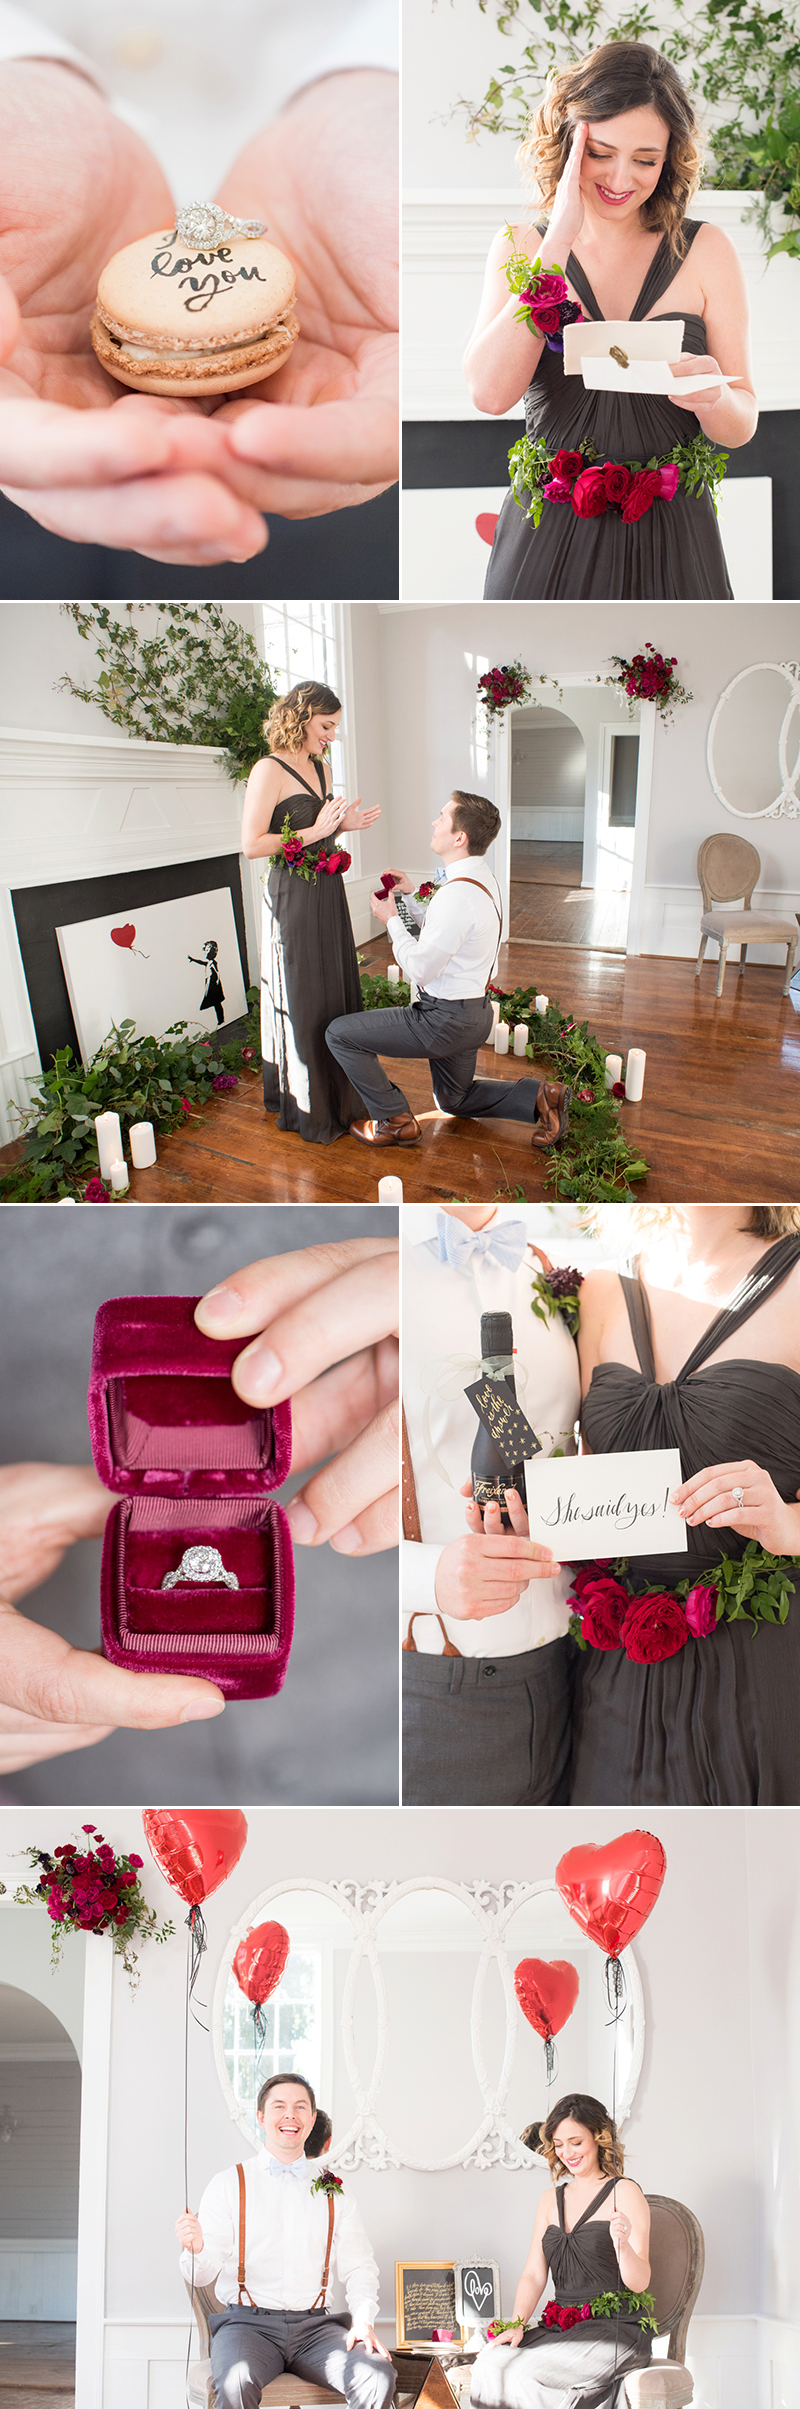 At home proposal